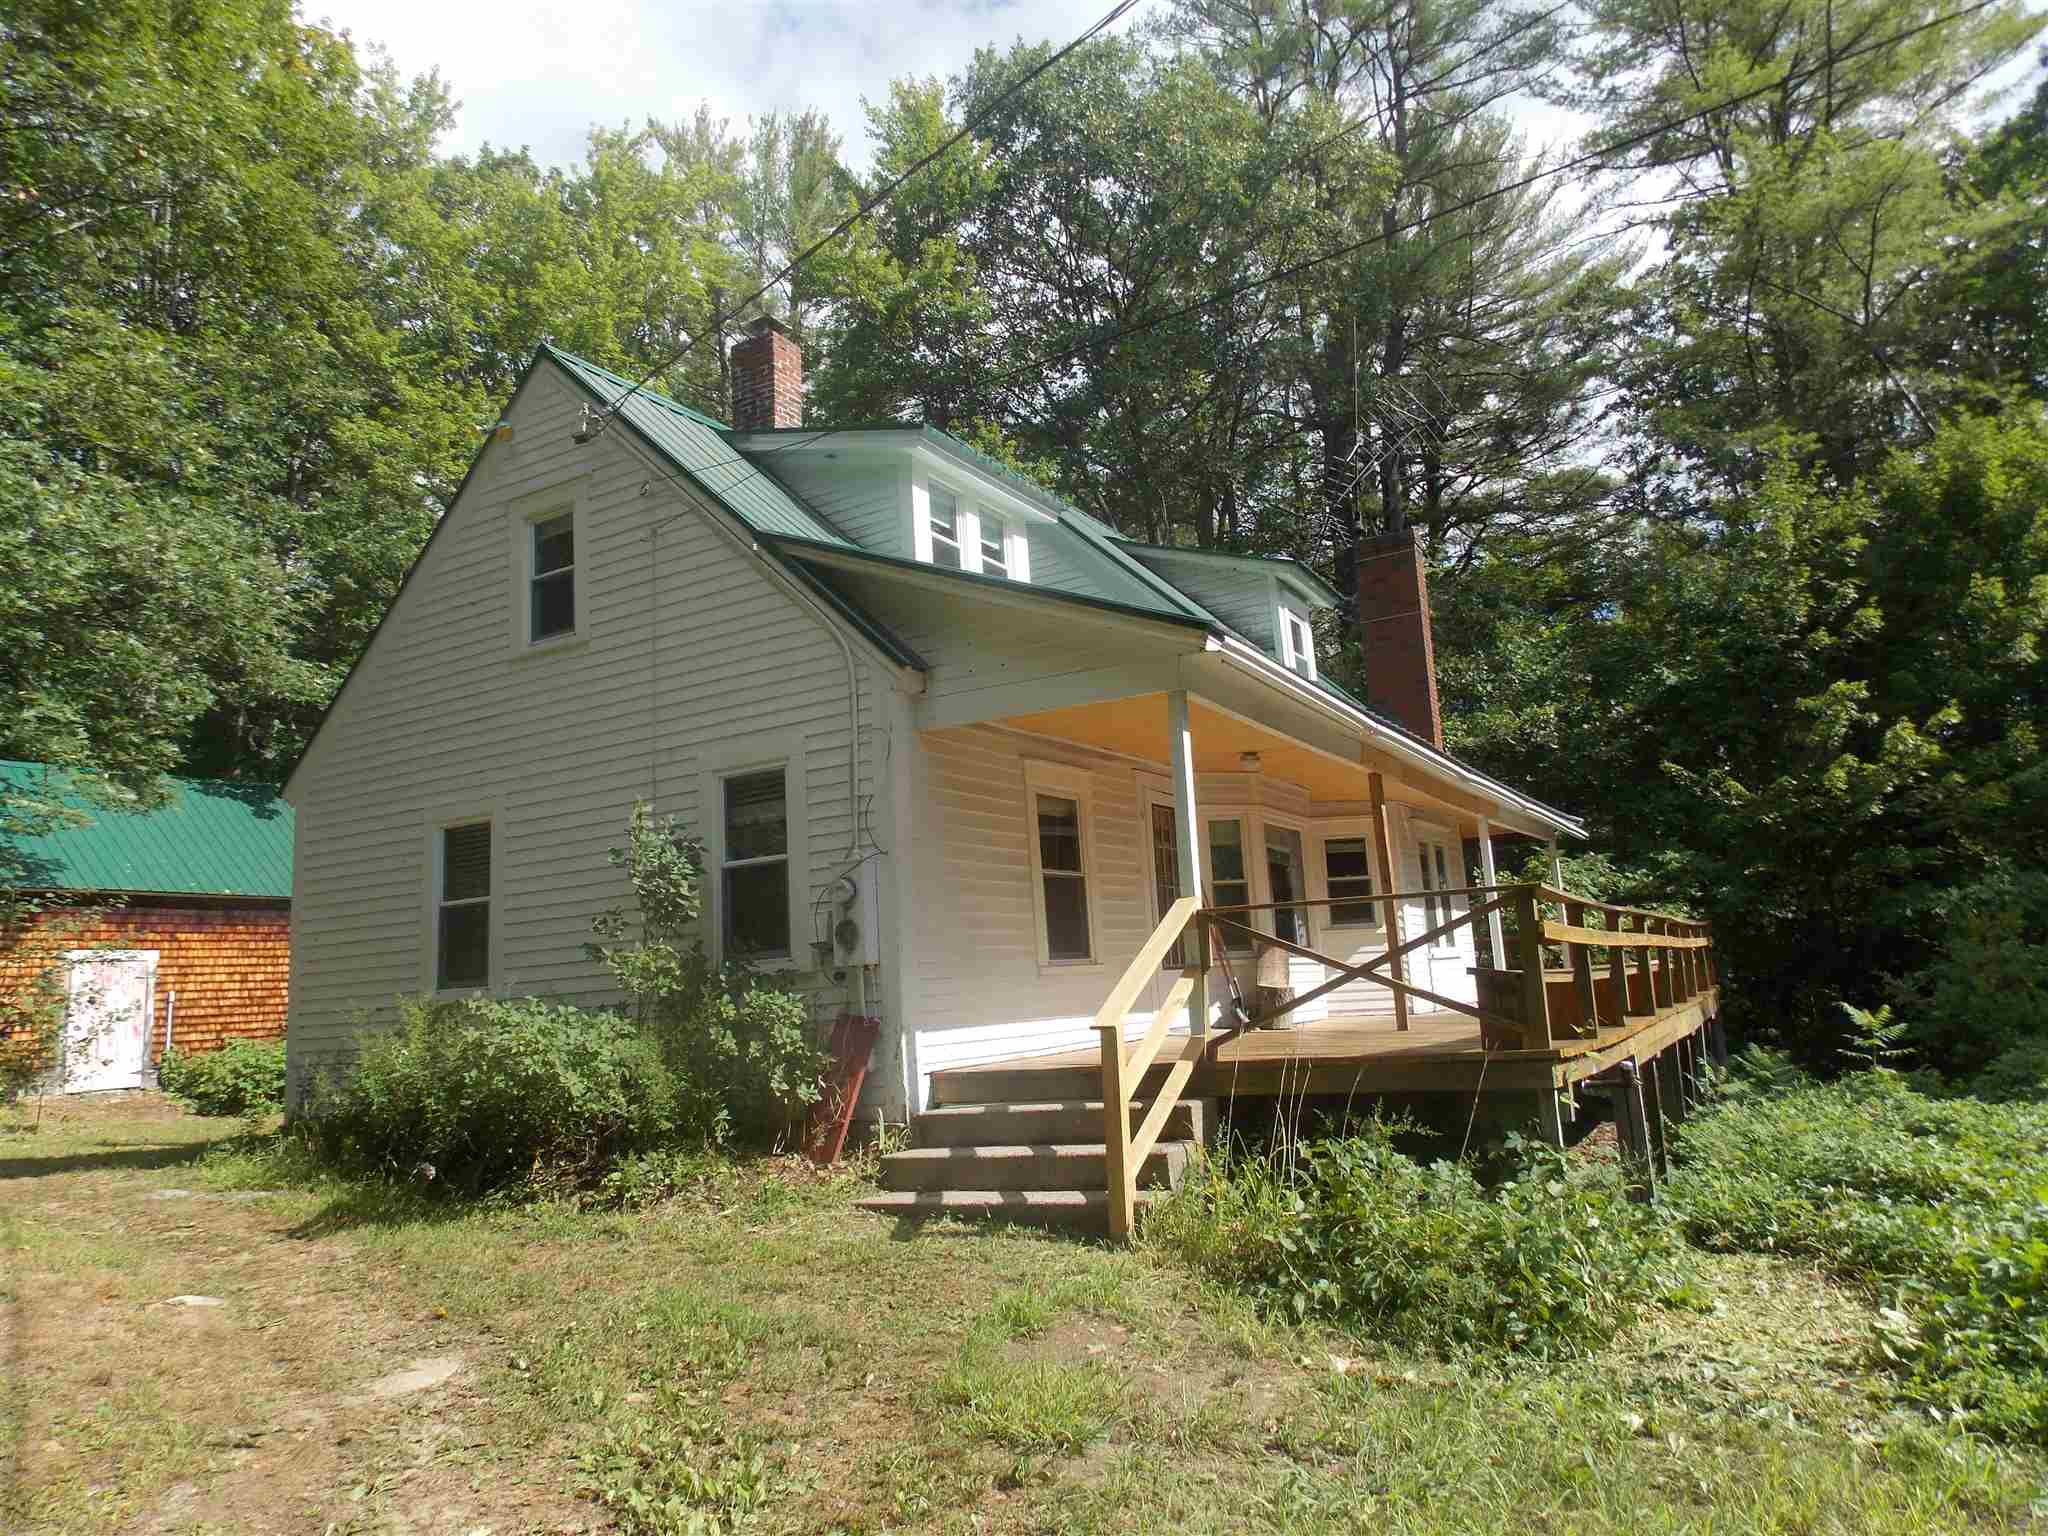 MLS 4826350: 7 Sand Hill Road, Hill NH